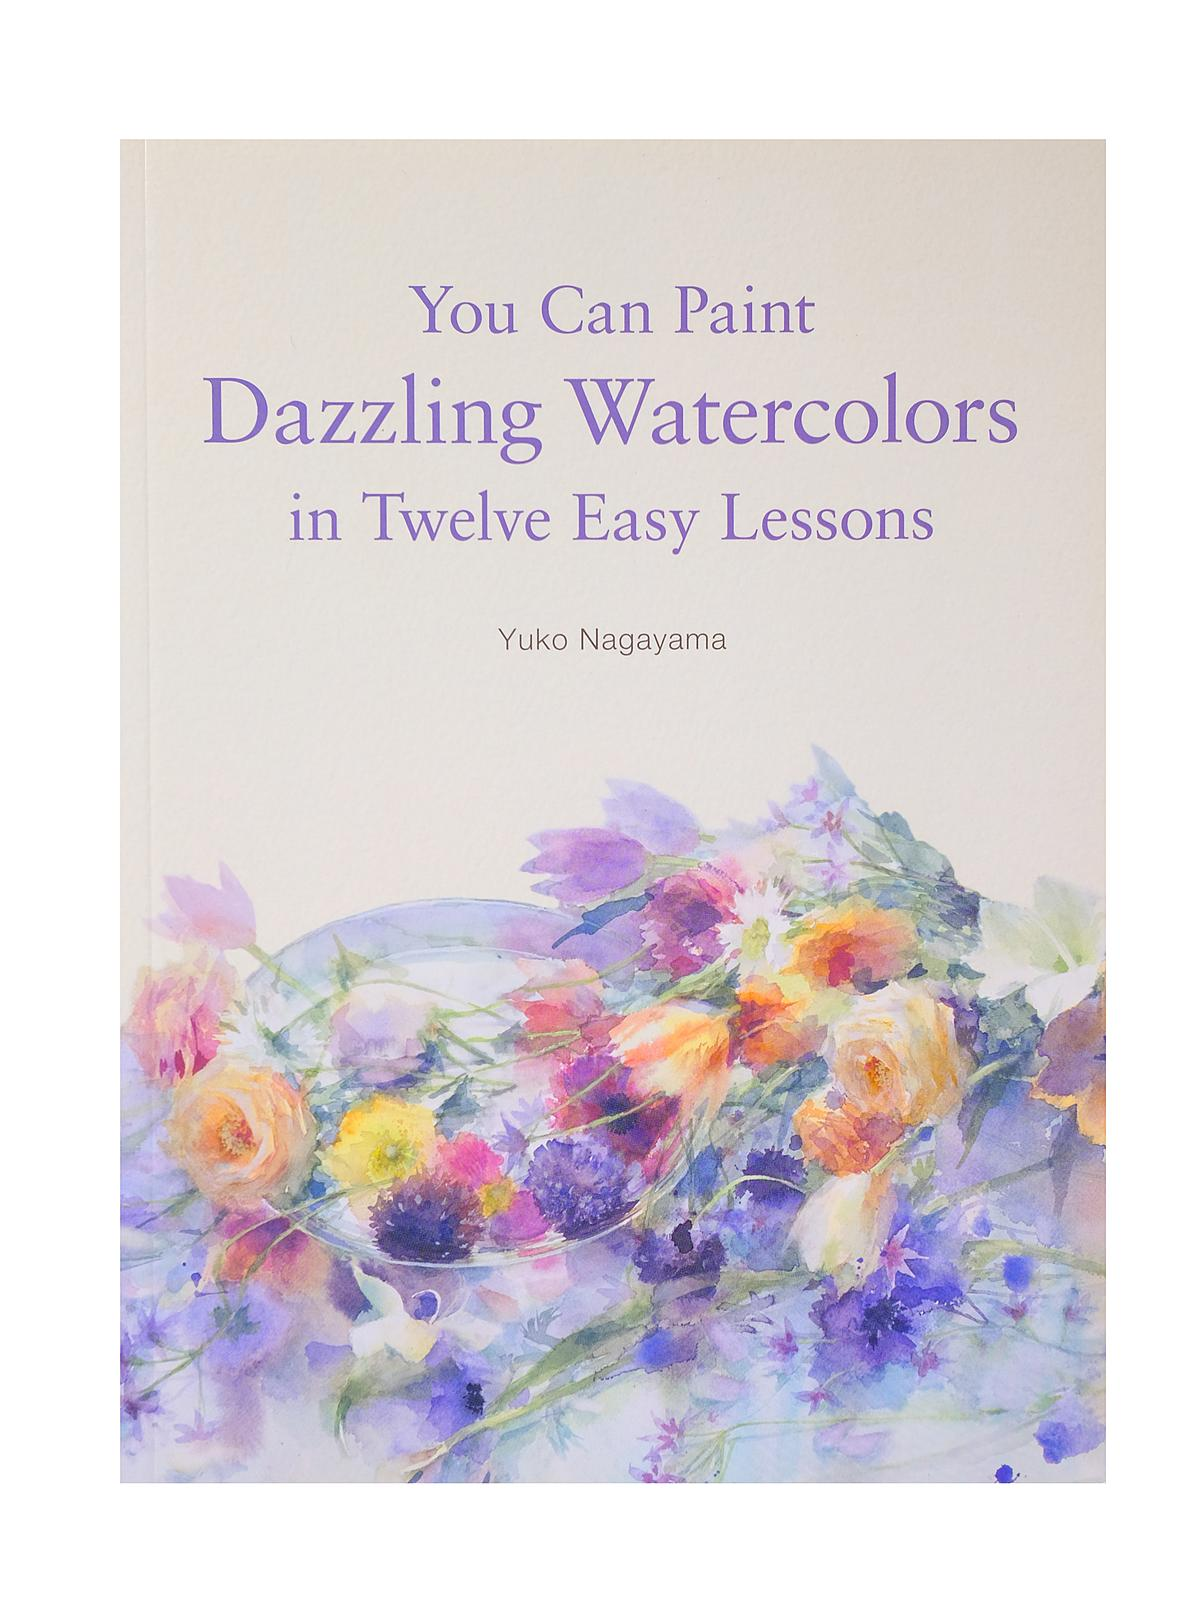 You Can Paint Dazzling Watercolors